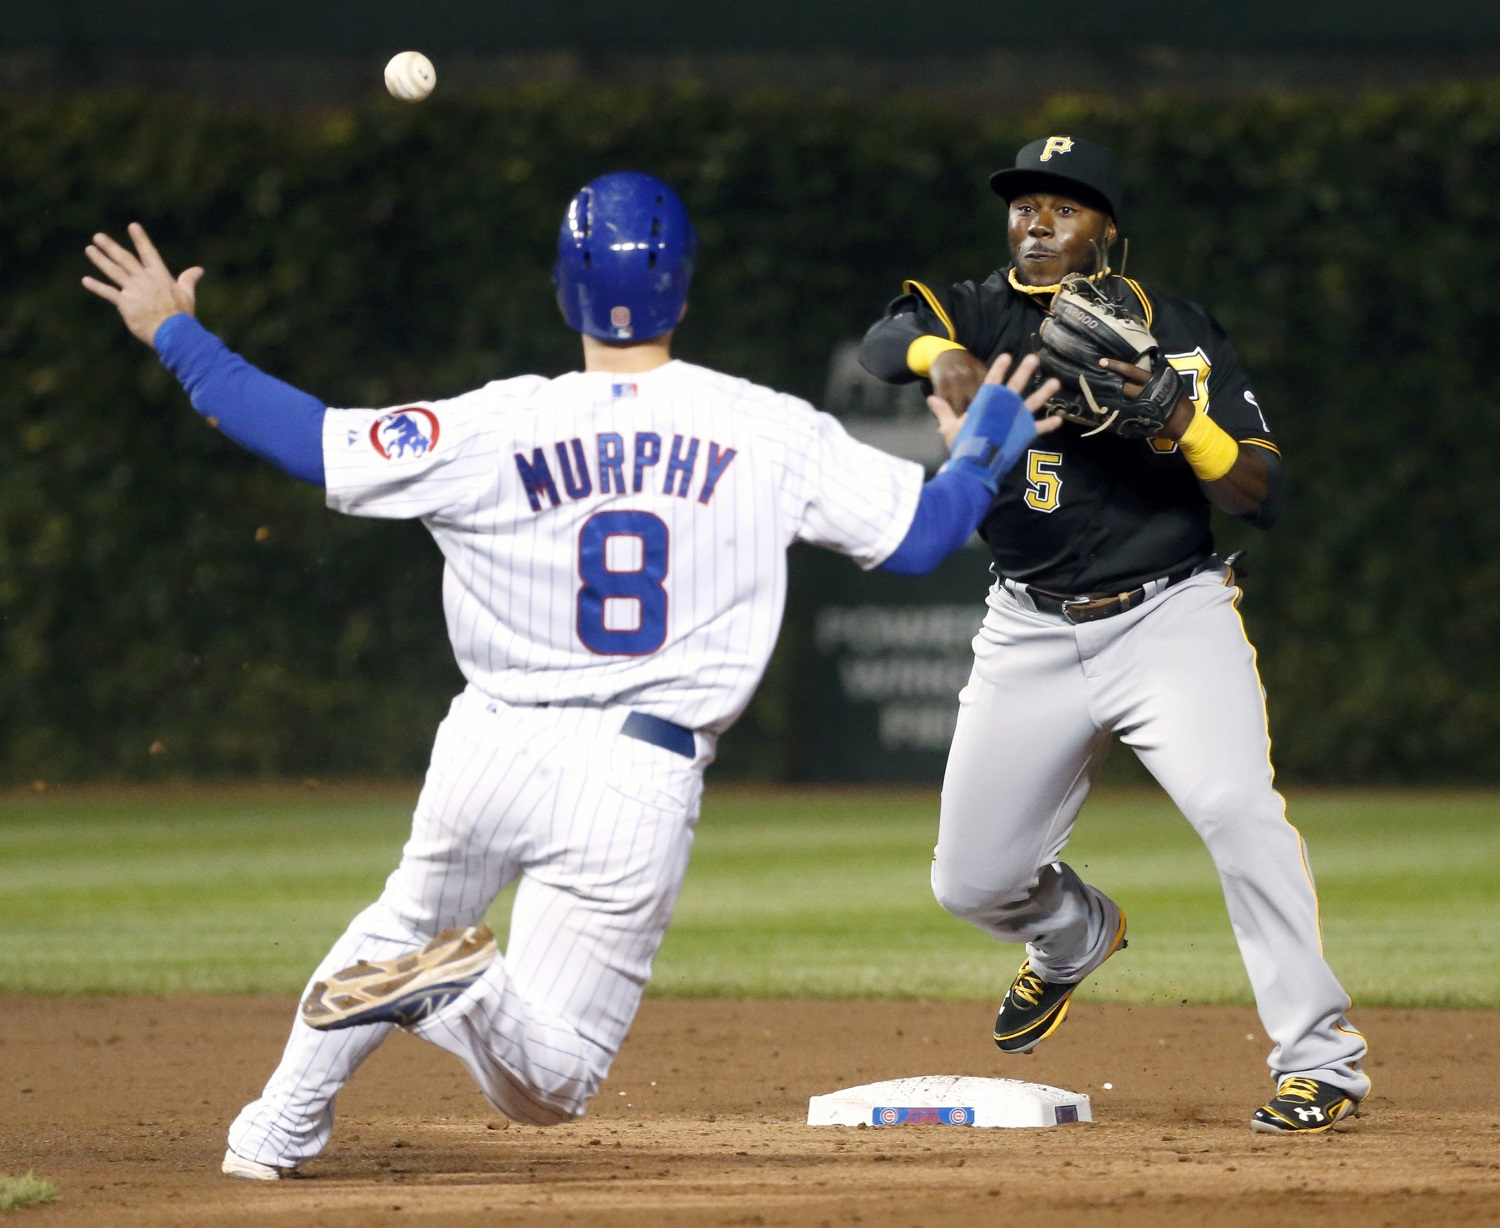 Pittsburgh Pirates second baseman Josh Harrison (5) turns the double play forcing Chicago Cubs' Donnie Murphy (8) at second and getting Brian Bogusevic at first during the second inning of a baseball game Tuesday, Sept. 24, 2013, in Chicago. (AP Photo/Charles Rex Arbogast)